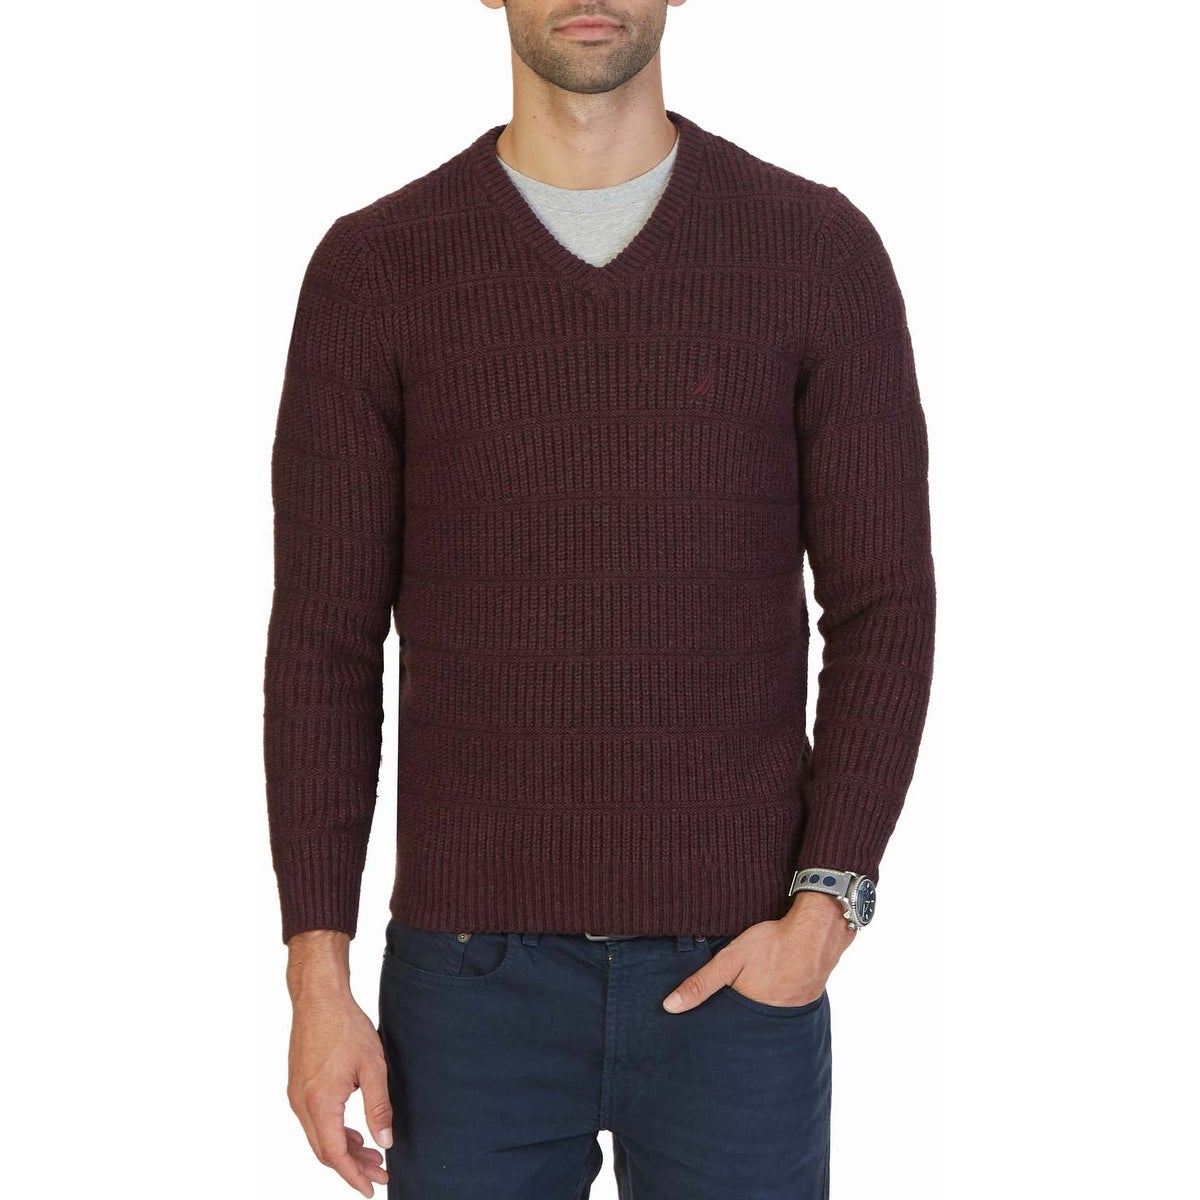 Shop Nautica Textured Knit V-Neck Sweater Shipwreck Burgundy - Free  Shipping Today - Overstock.com - 17415905 5f591b10f